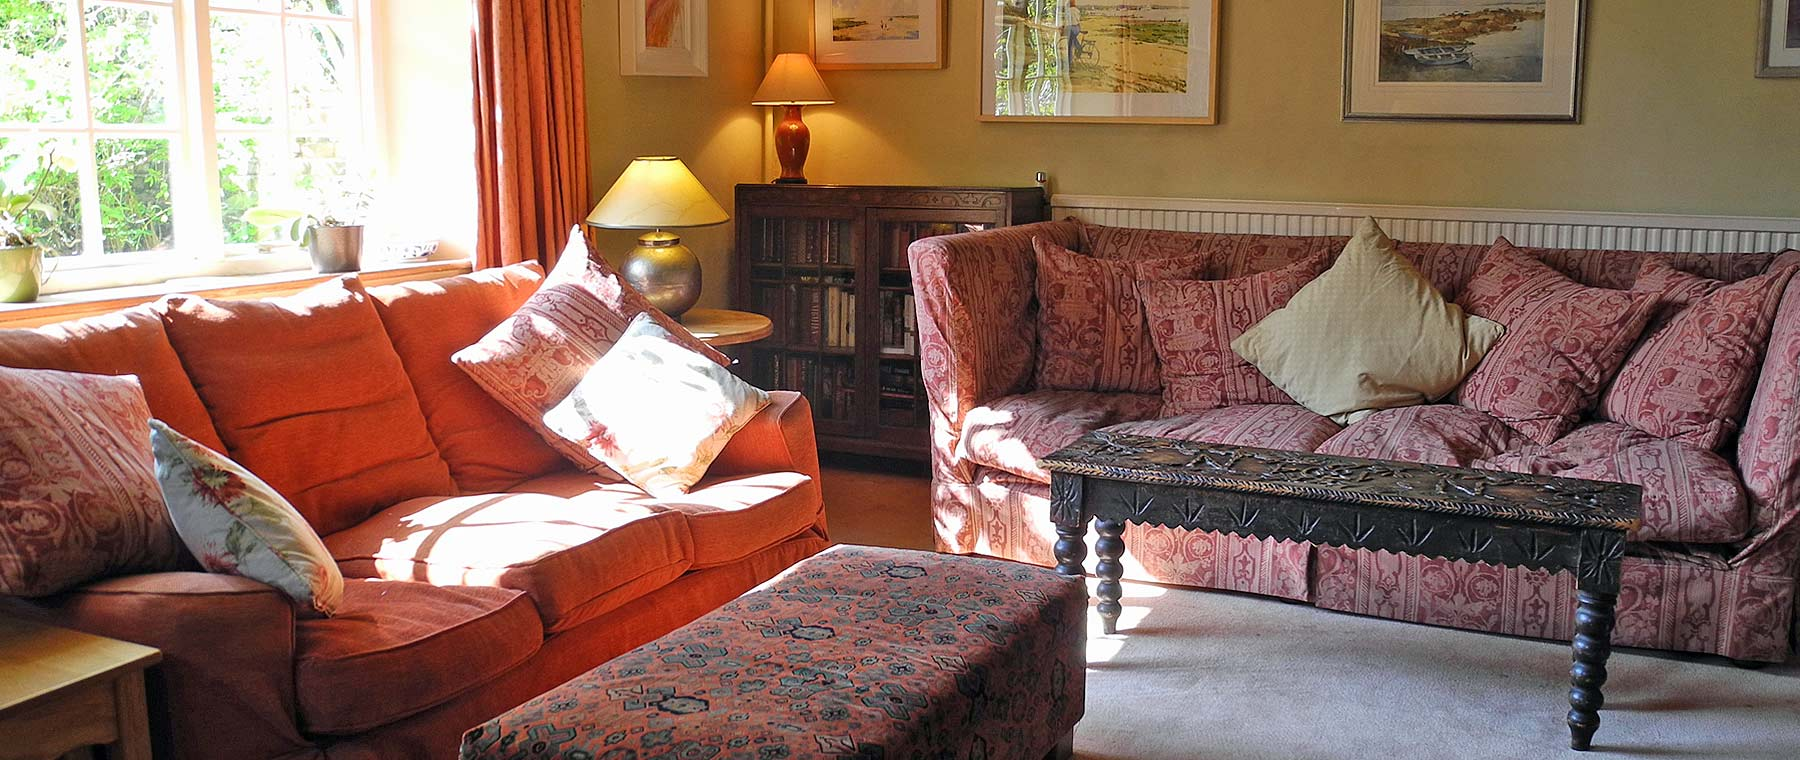 Cosy Lounge Areas